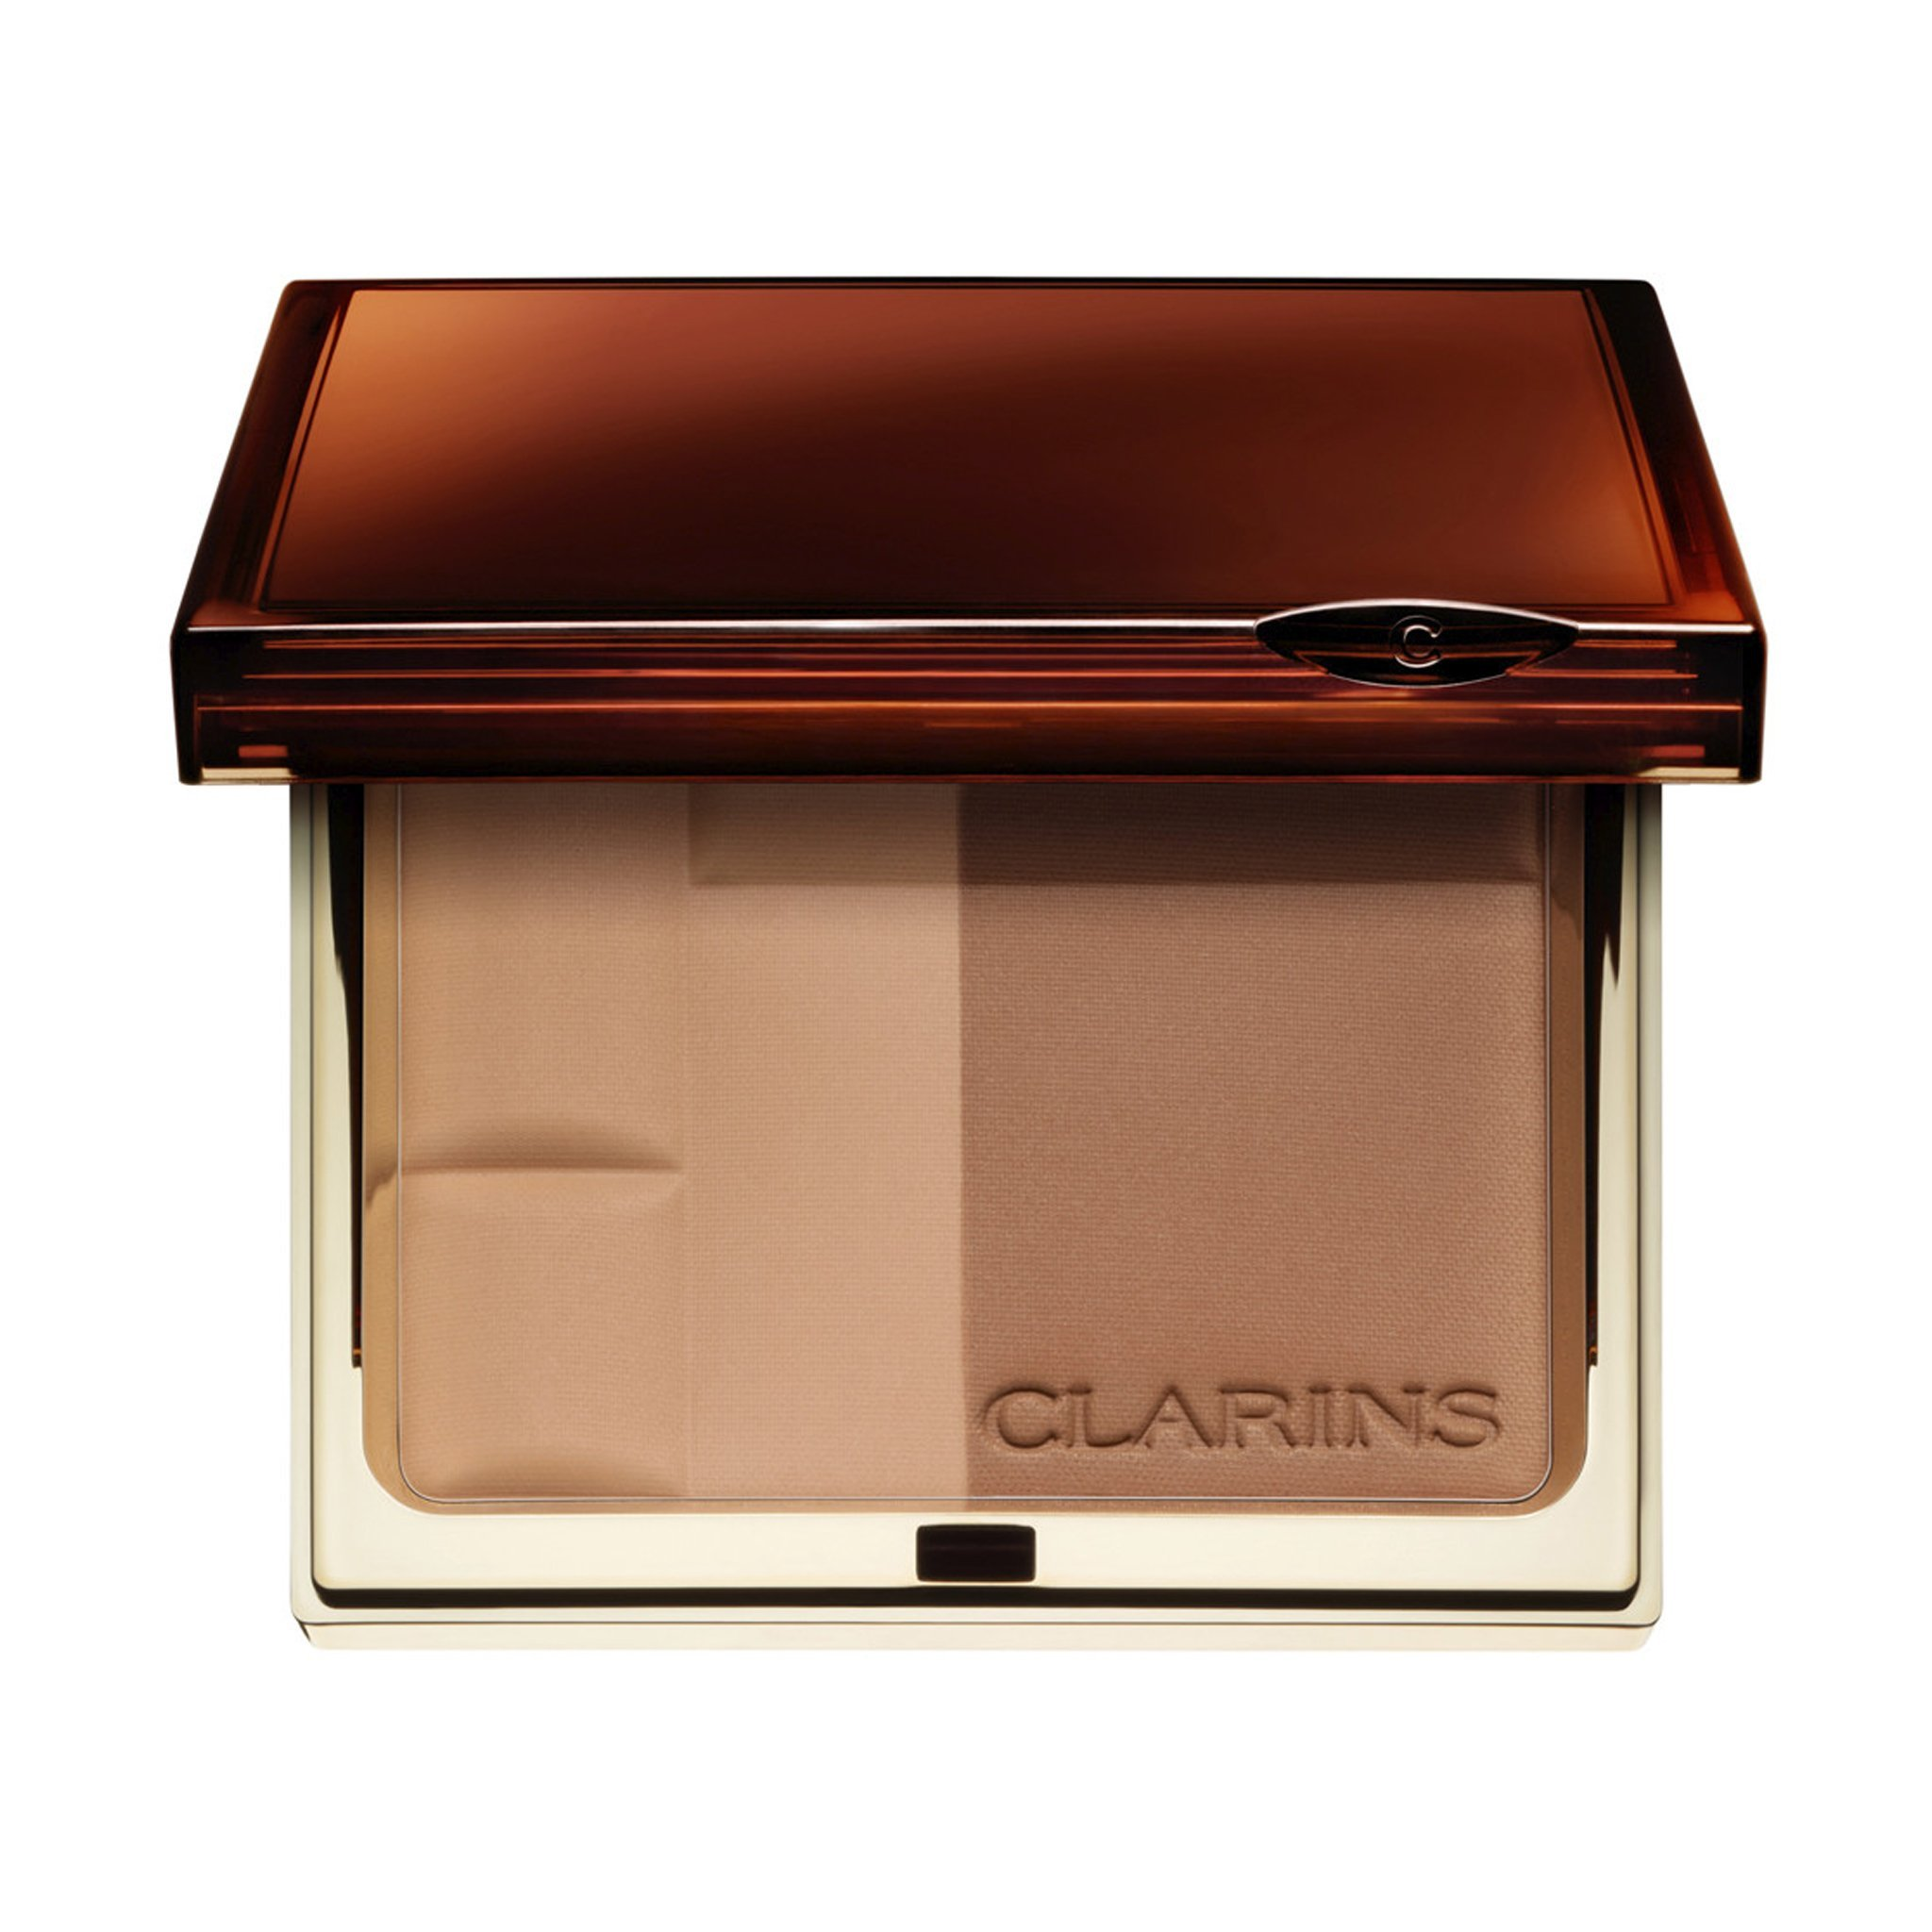 Clarins Bronzing Duo Mineral Powder Compact SPF 15 - 02 Medium 10g/0.35oz